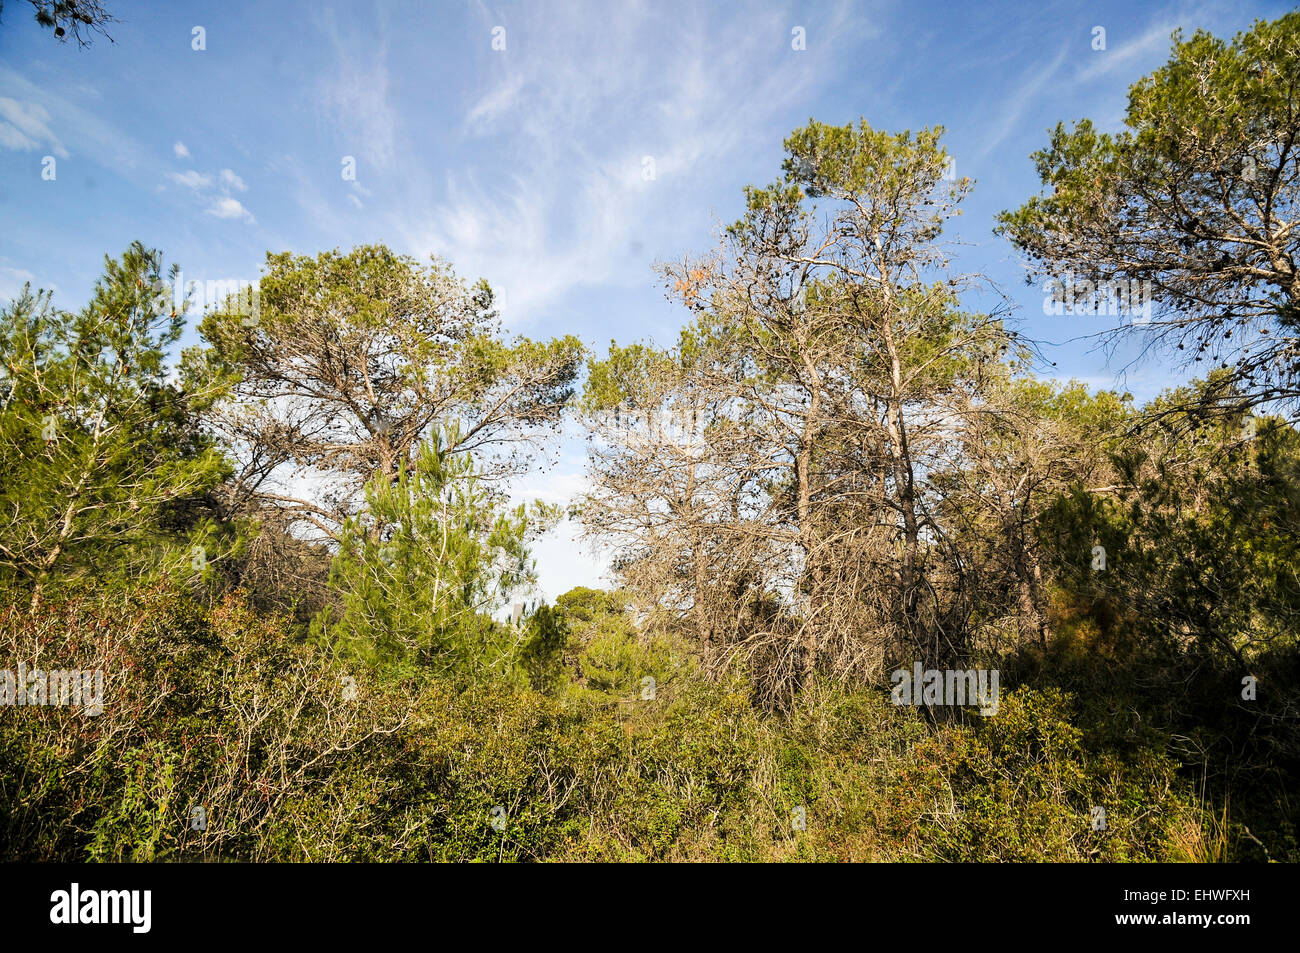 Pine tree forest. Photographed in the Carmel Mountain, Israel - Stock Image